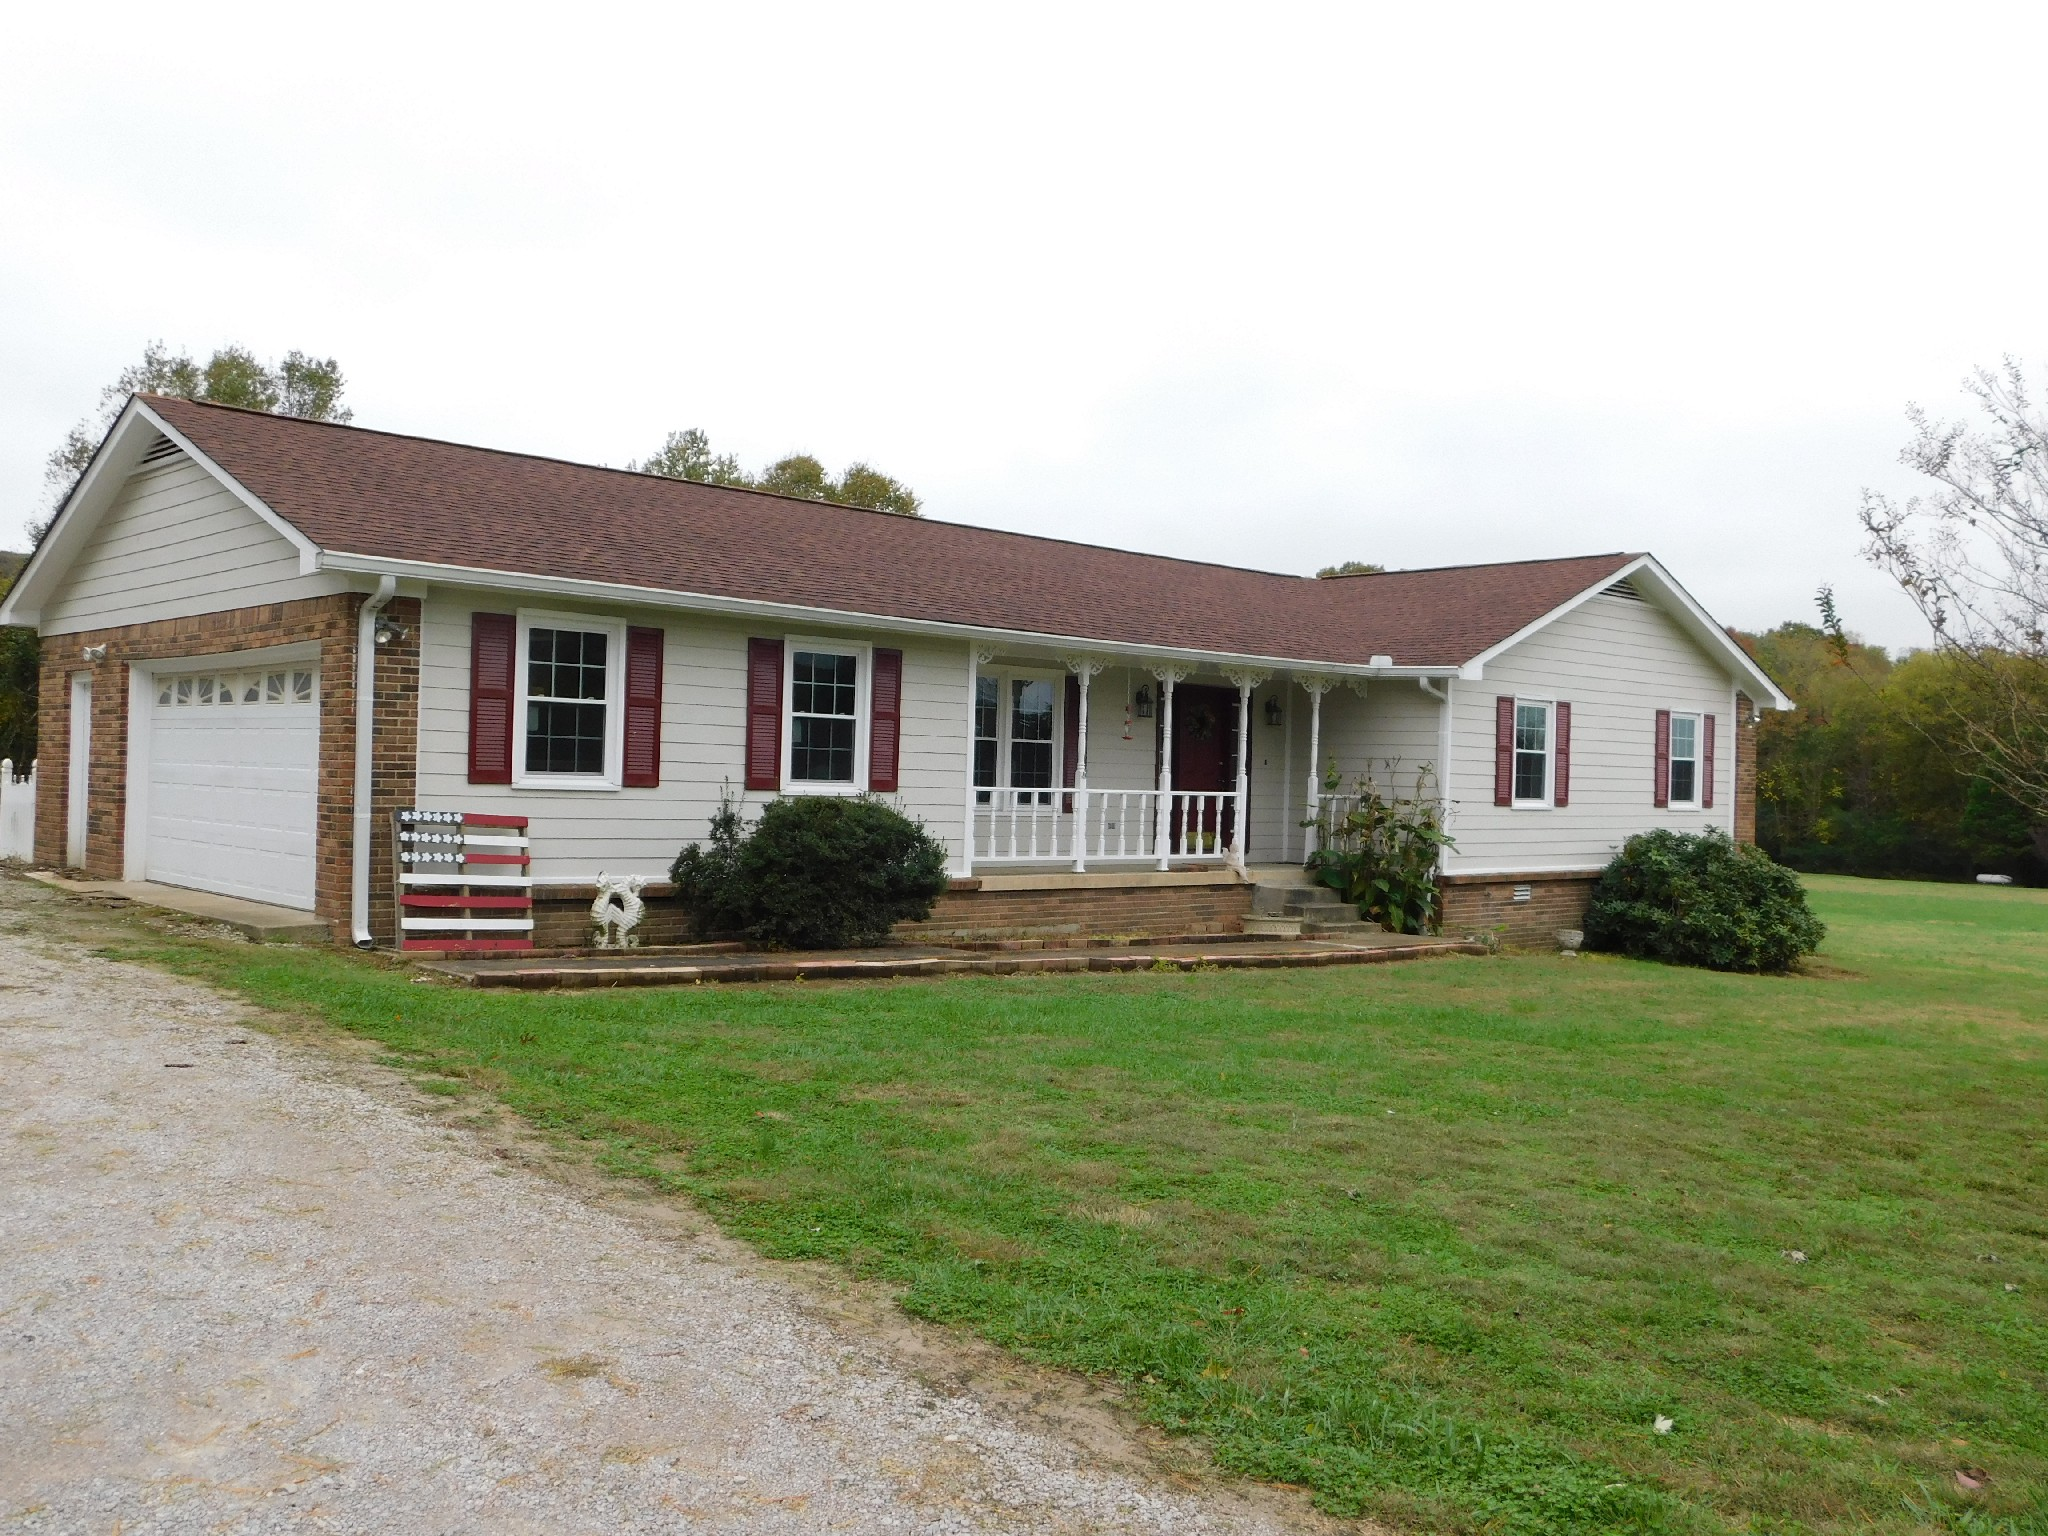 2051 Tice Dr, Culleoka, TN 38451 - Culleoka, TN real estate listing